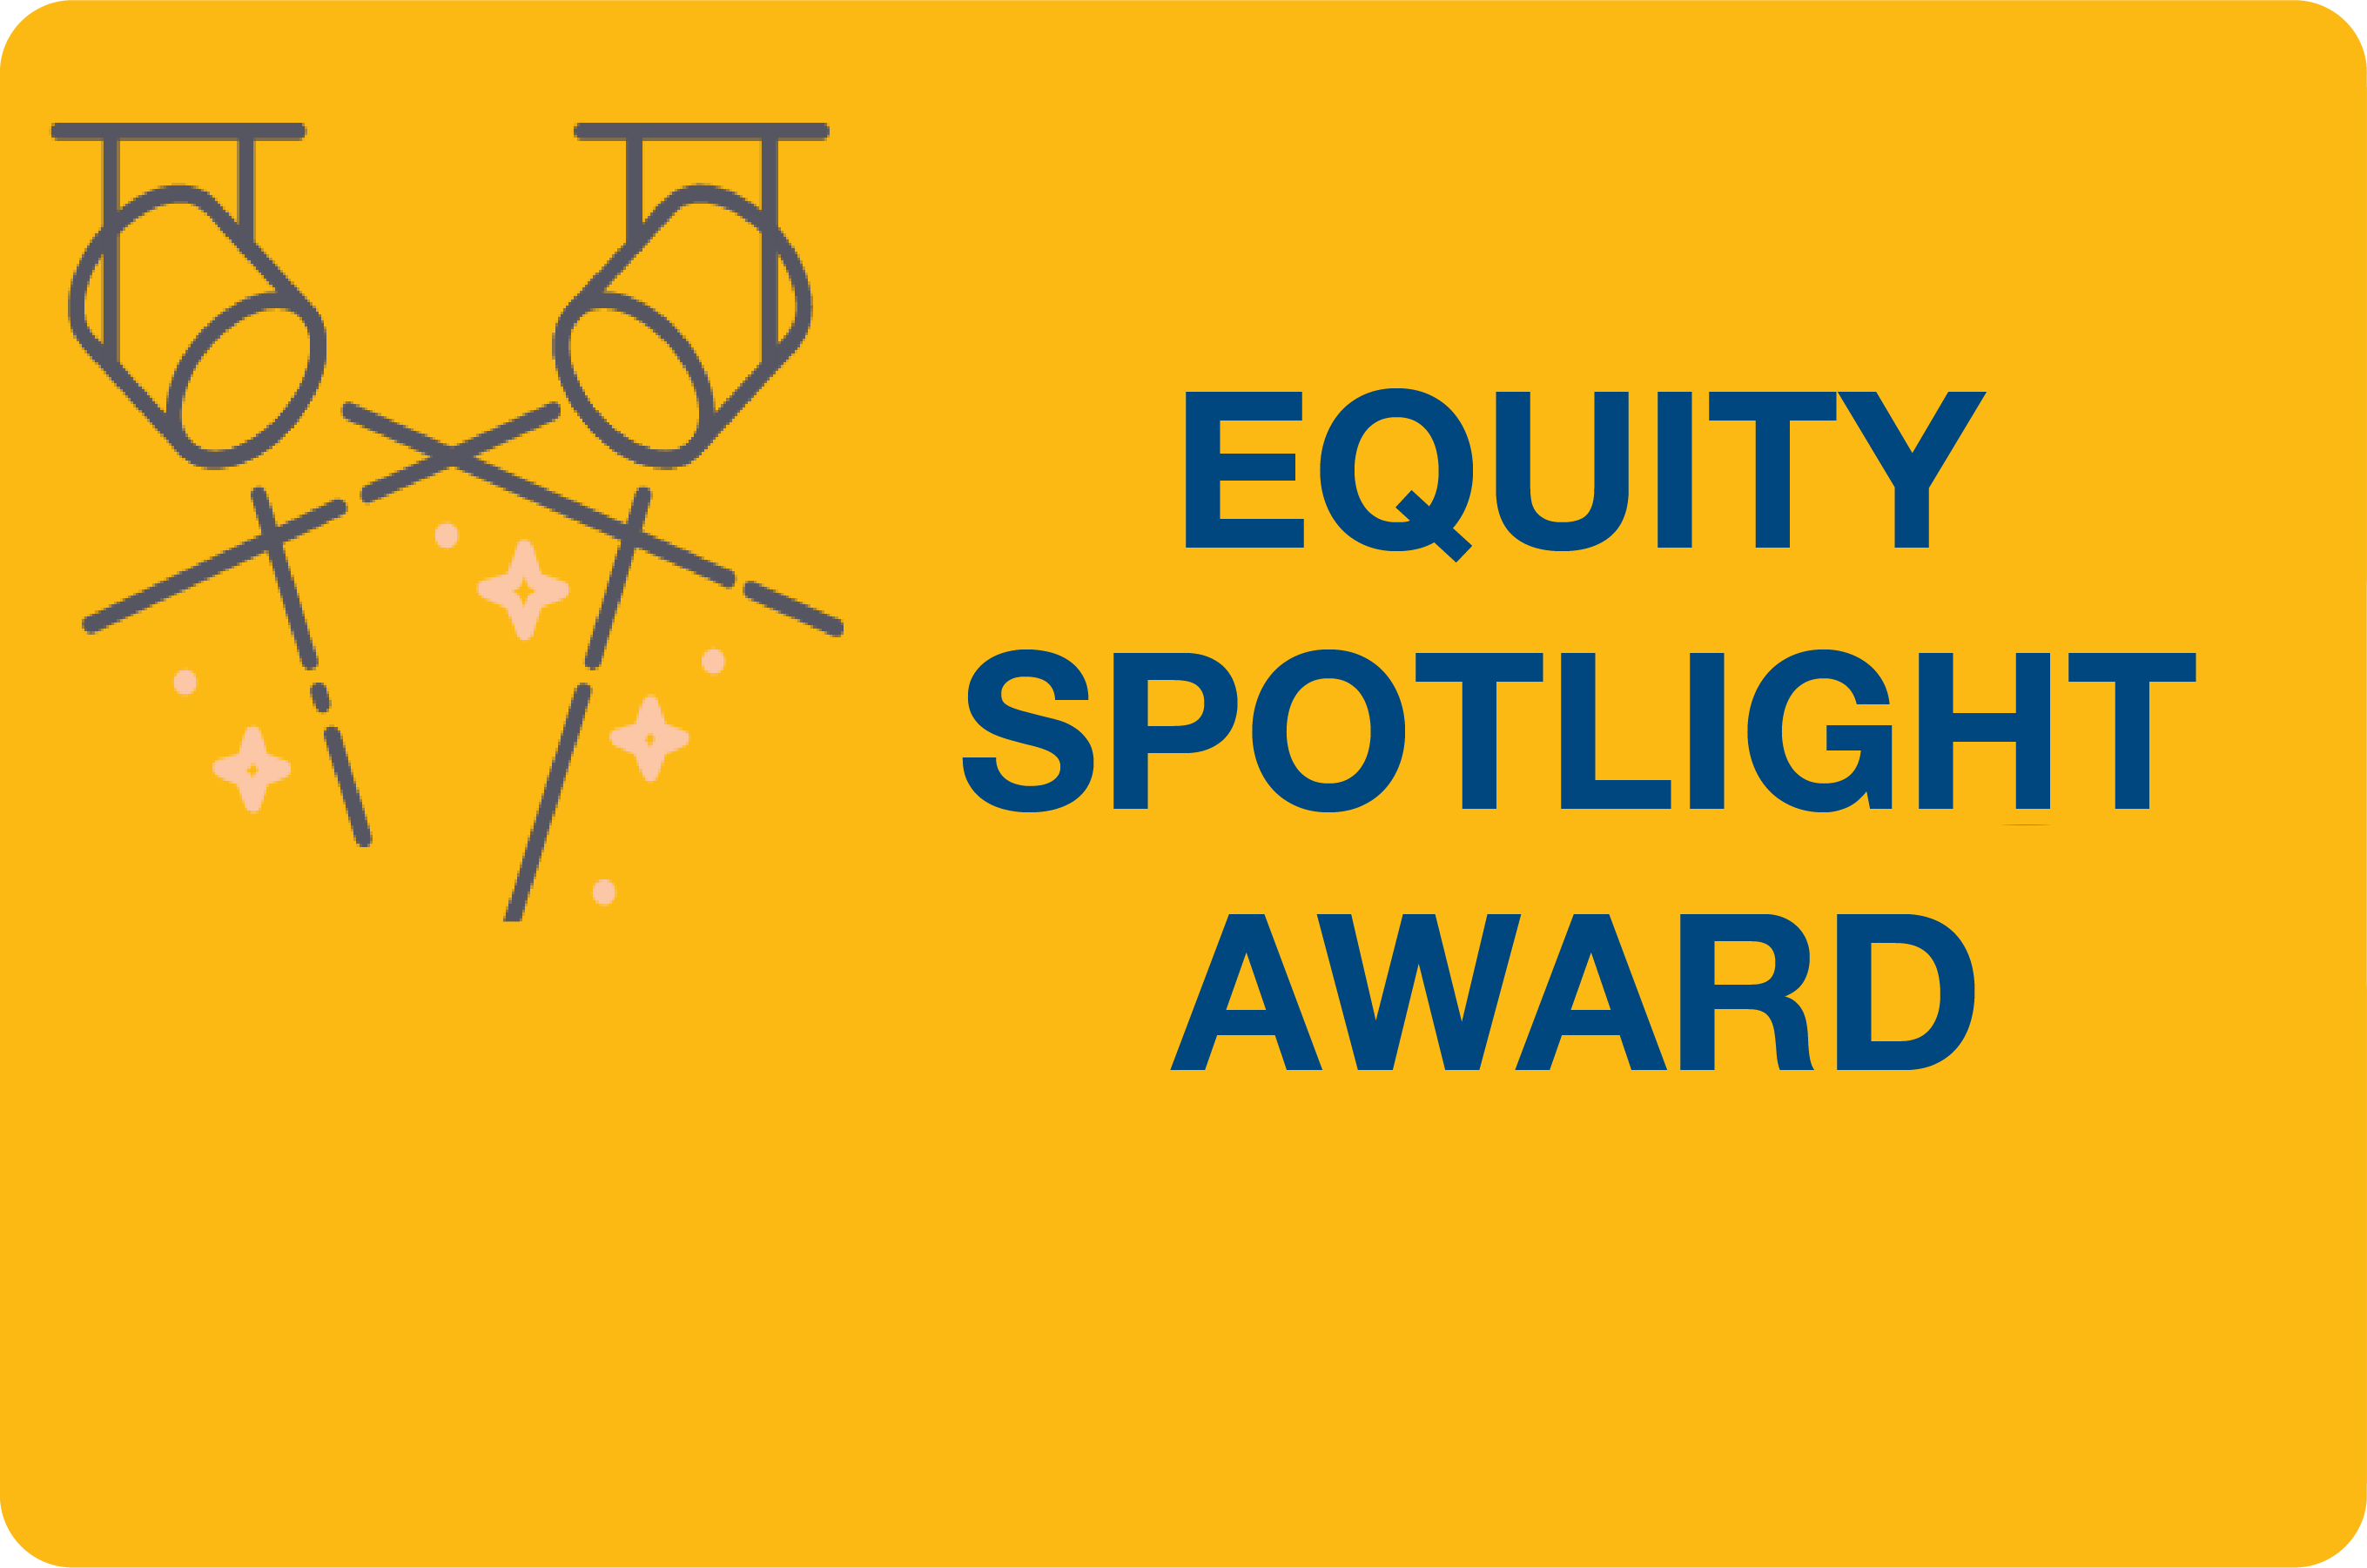 Equity Spotlight Award